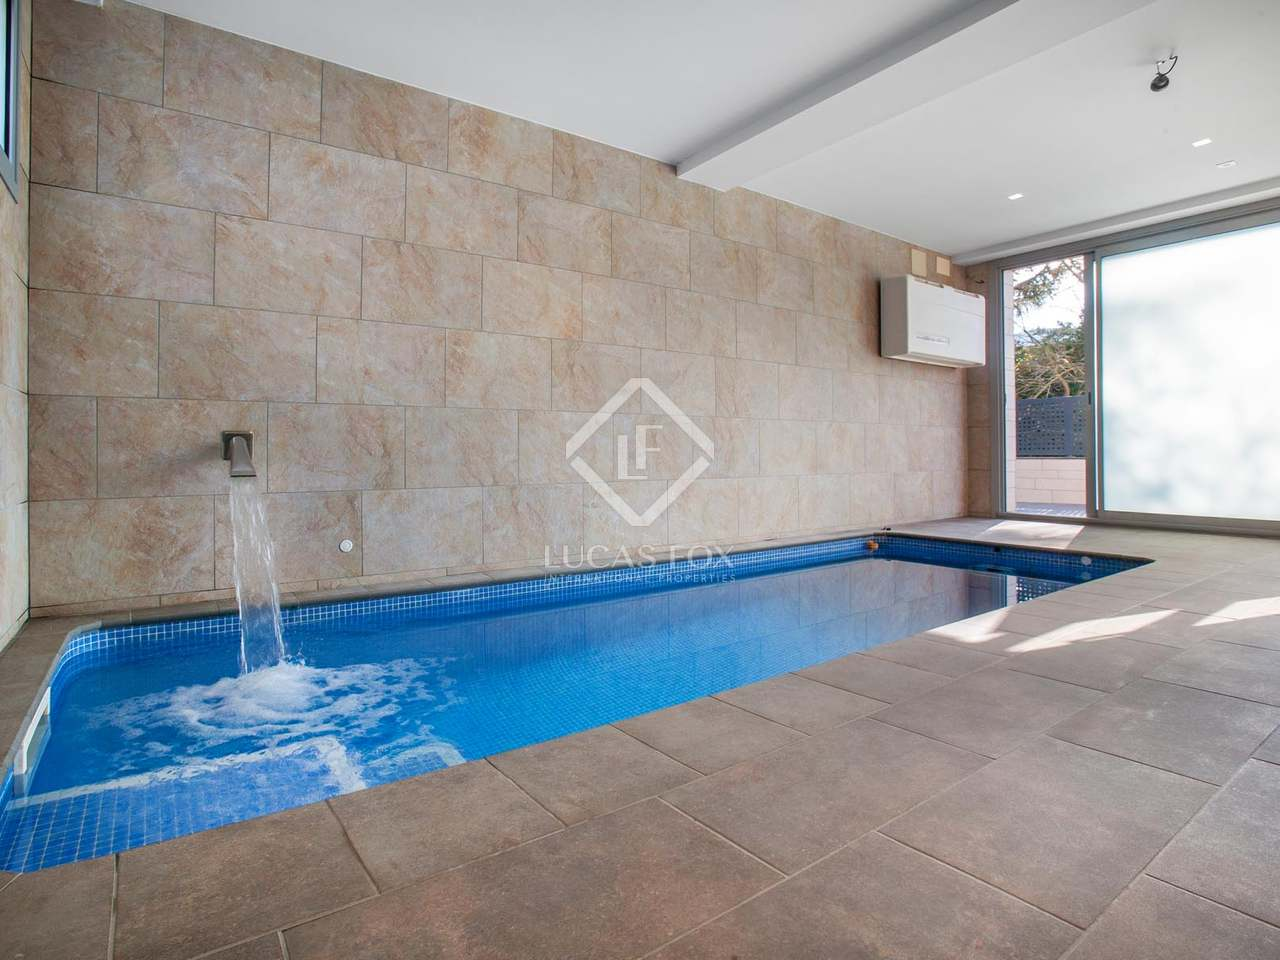 3 bedroom villa with an indoor pool for sale in vallromanes for 6 bedroom house with swimming pool for sale